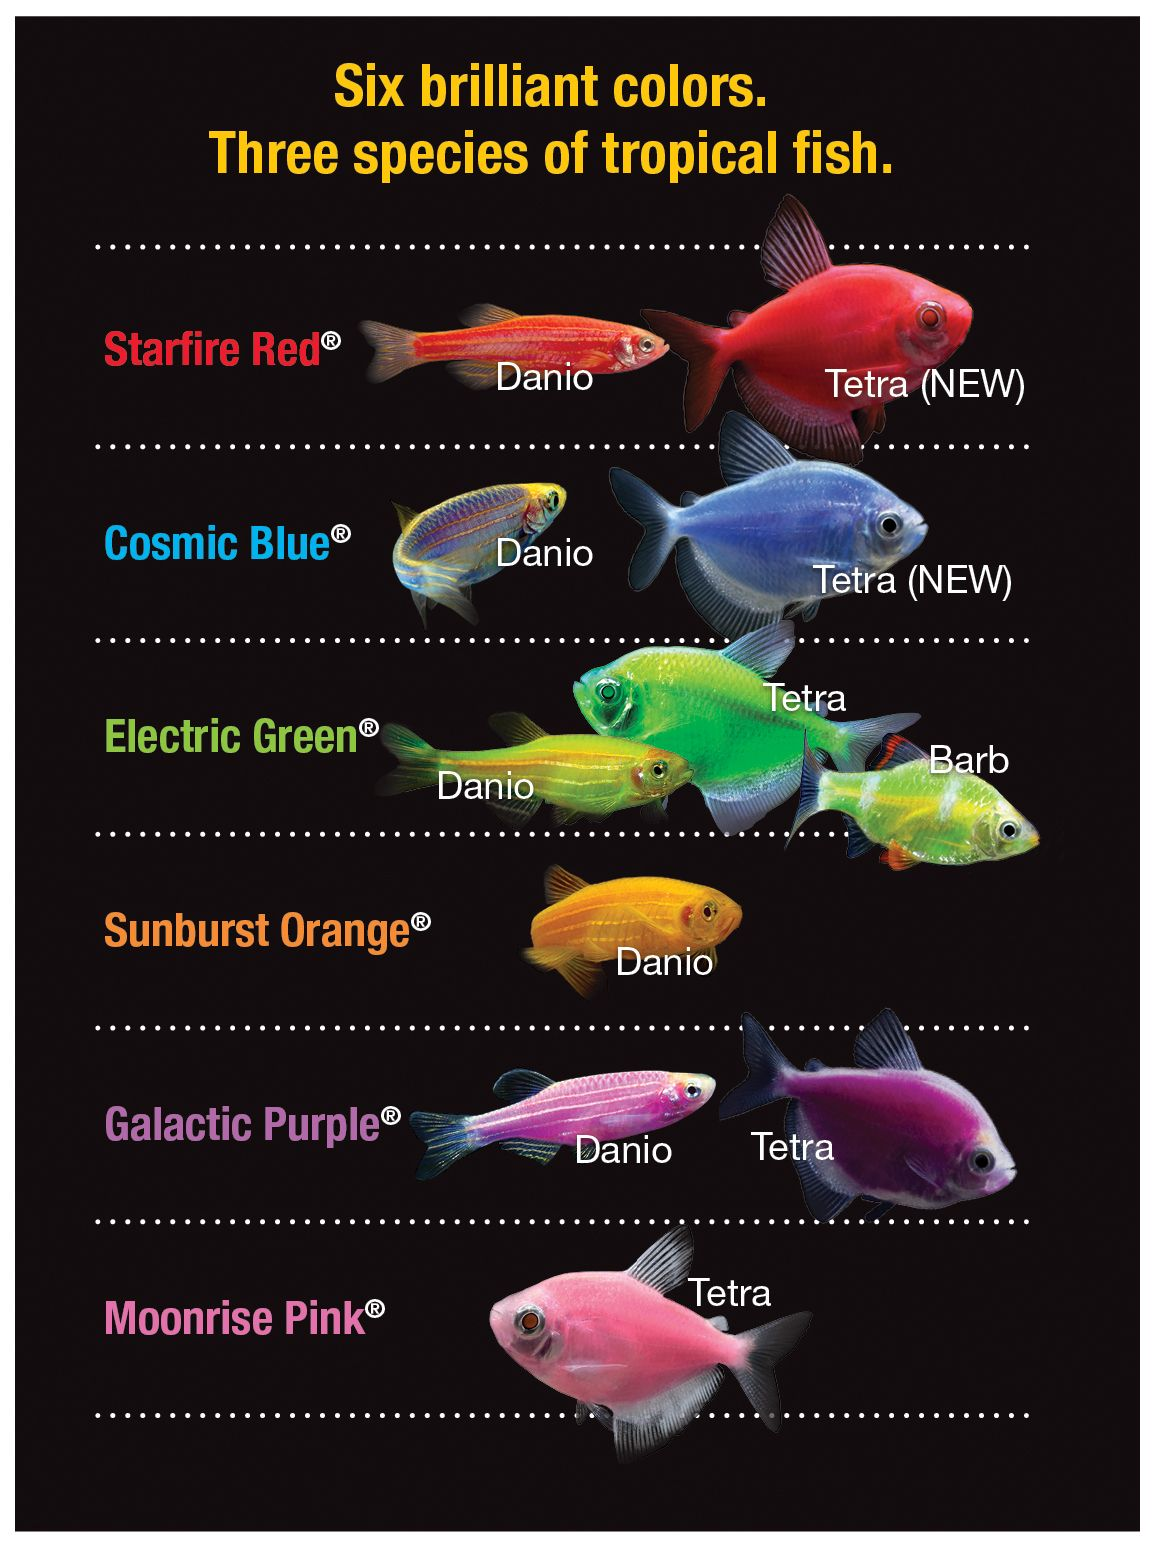 Glofishchart 1155 1545 aquarium related for How to take care of fish tank